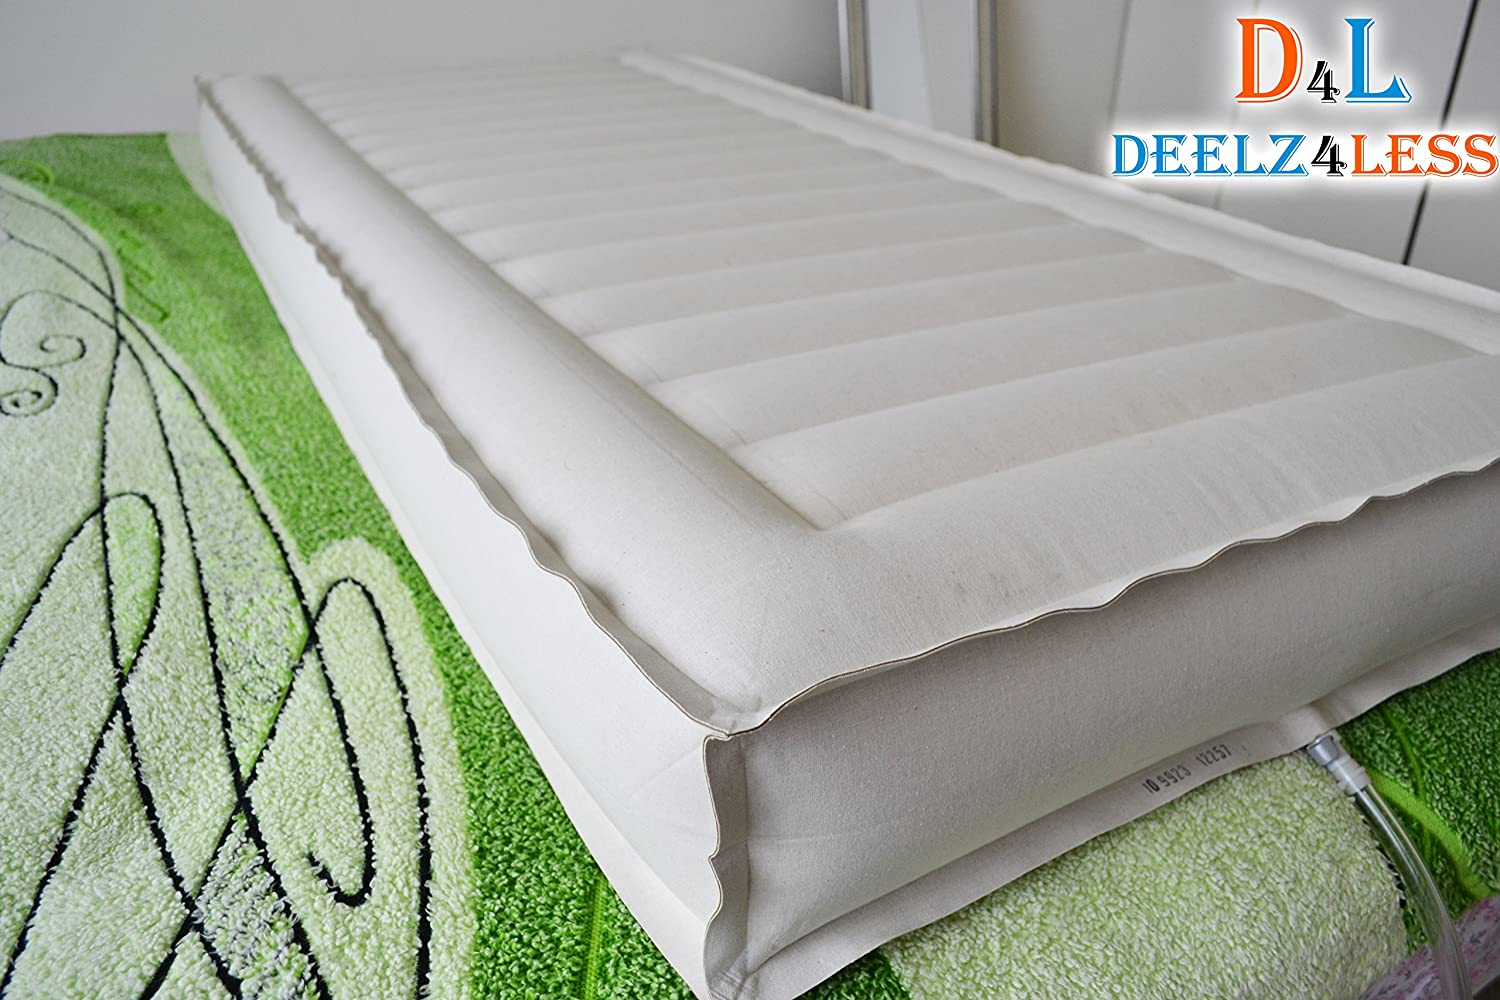 Used Select Comfort Sleep Number Air Bed Chamber for 1 2 Queen Size Mattress S 273 Q-Dual